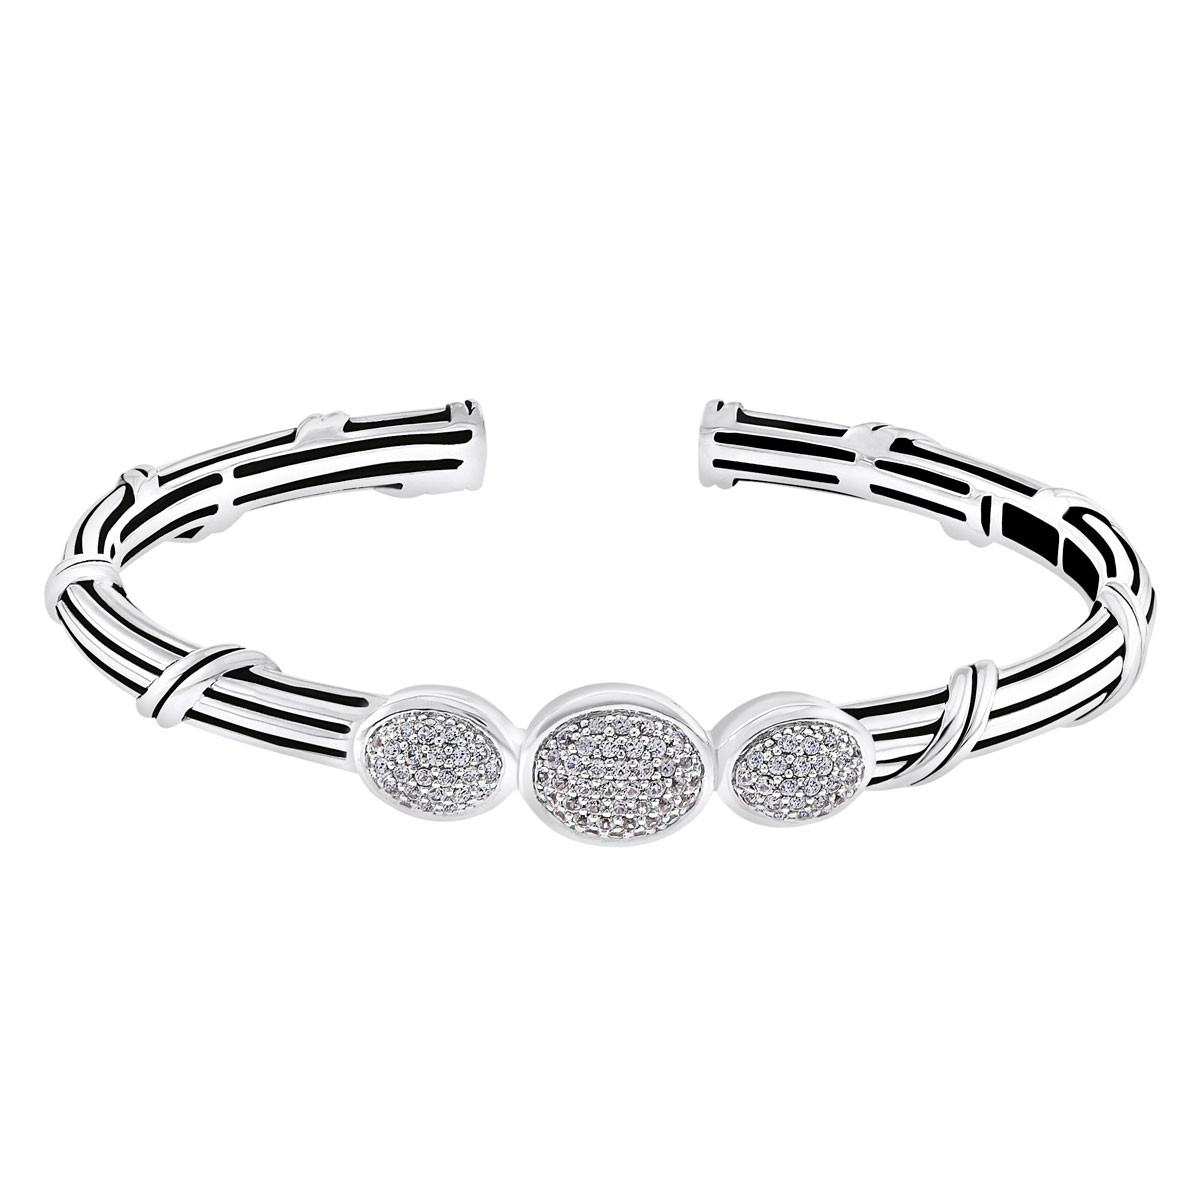 Signature Classic 3 Oval Pave Cuff with white topaz in sterling silver